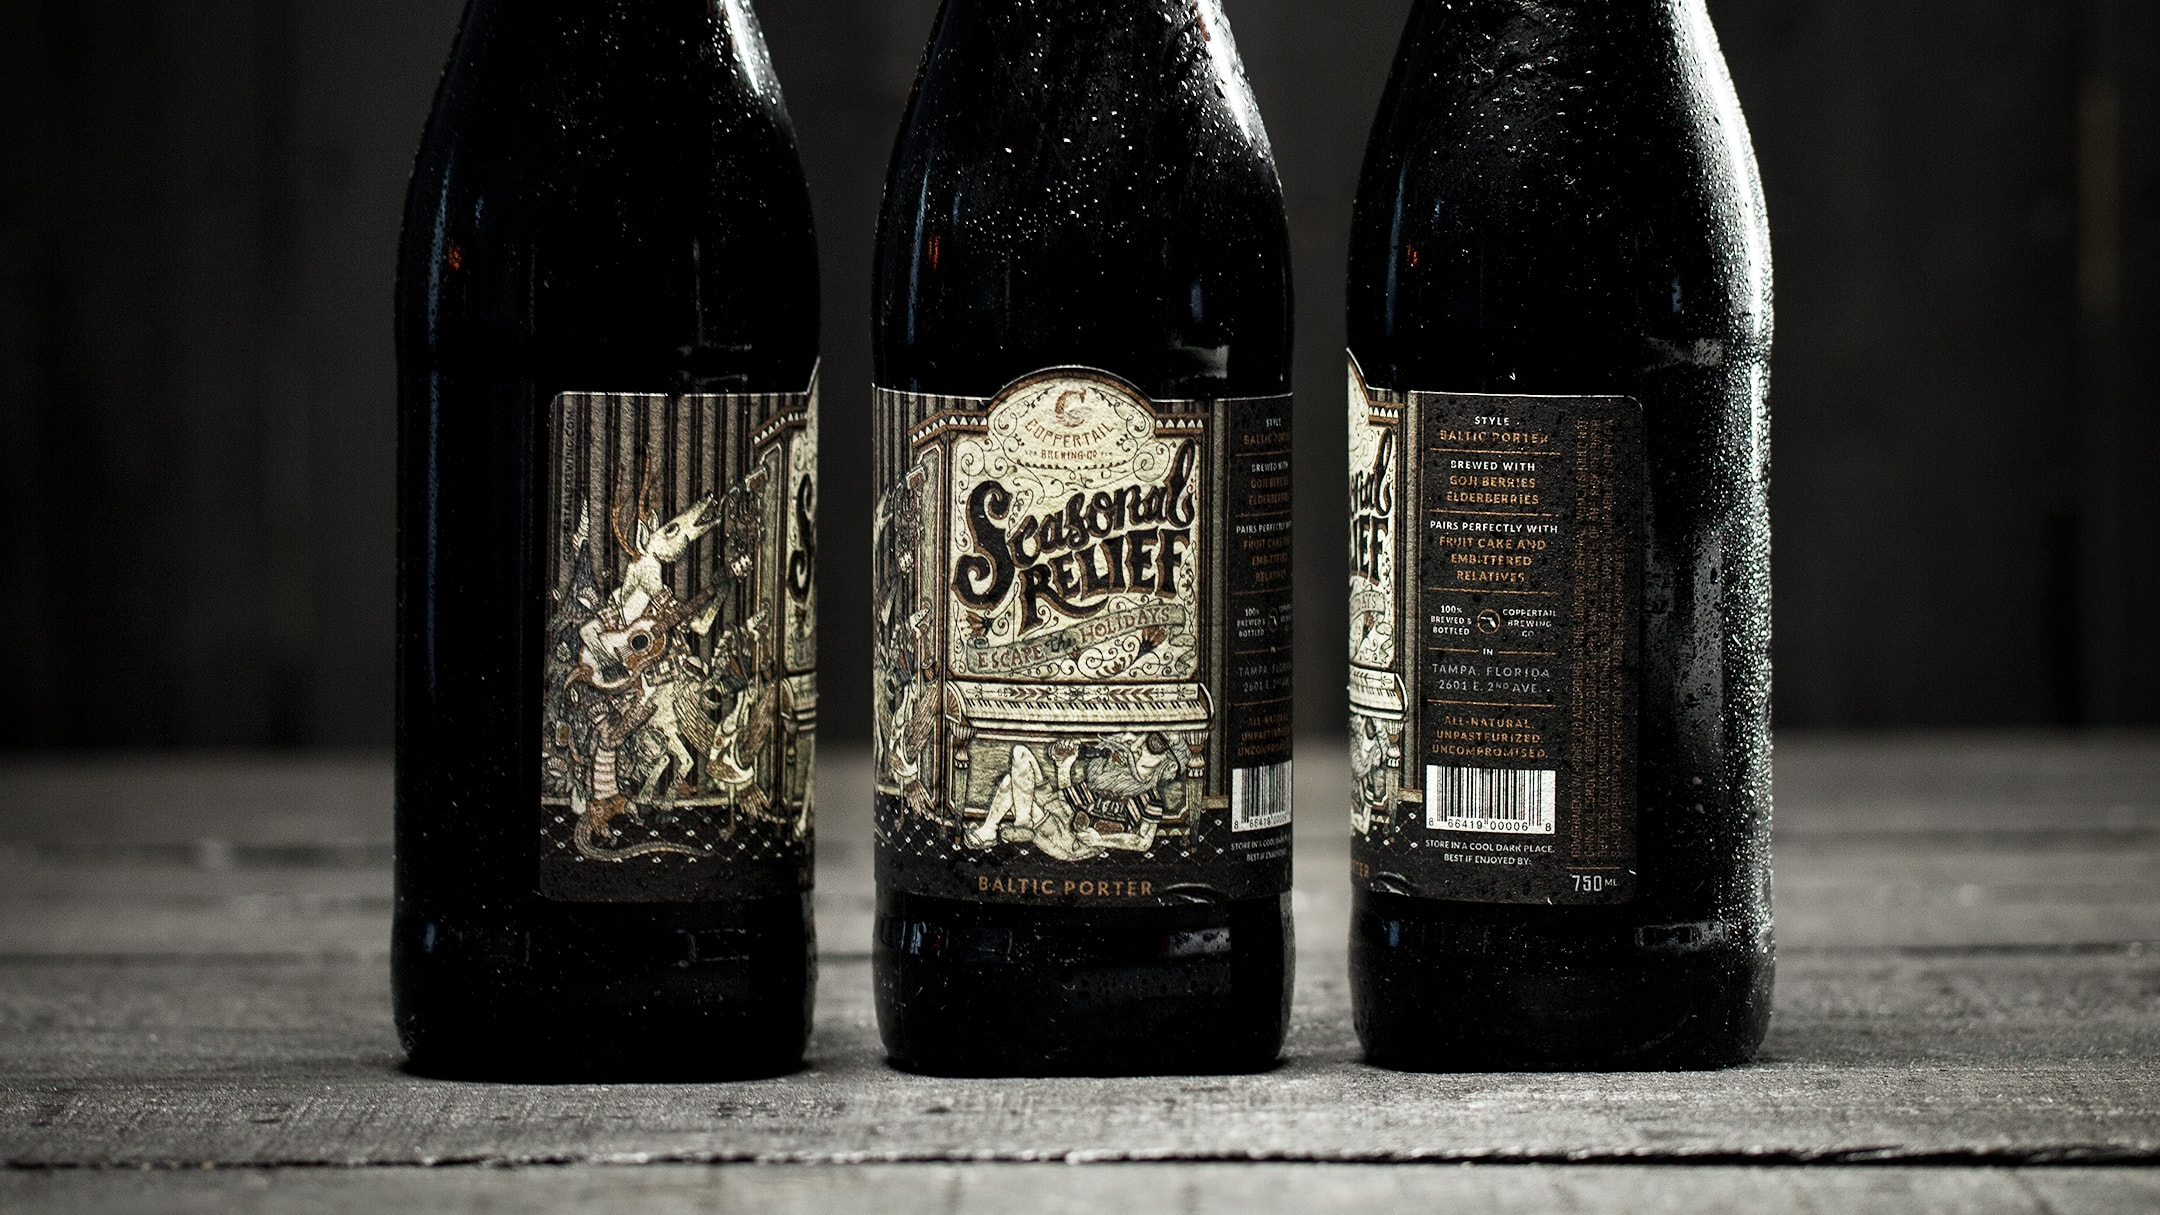 Coppertail specialty seasonal label on bottles